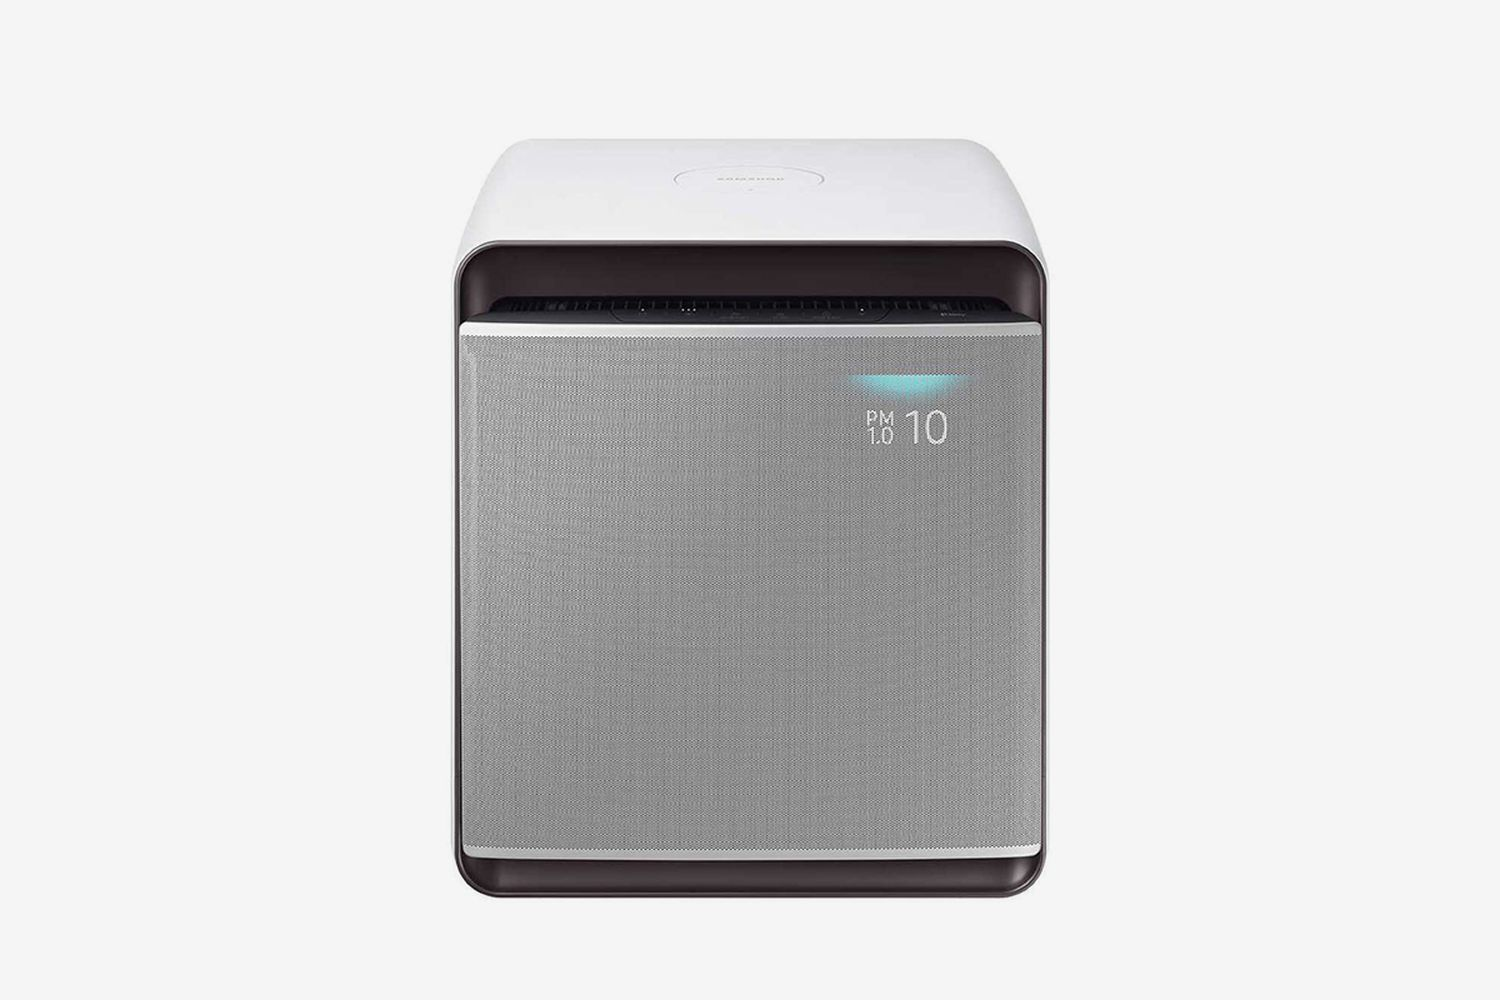 Cube Air Purifier with Wind-Free Air Purification